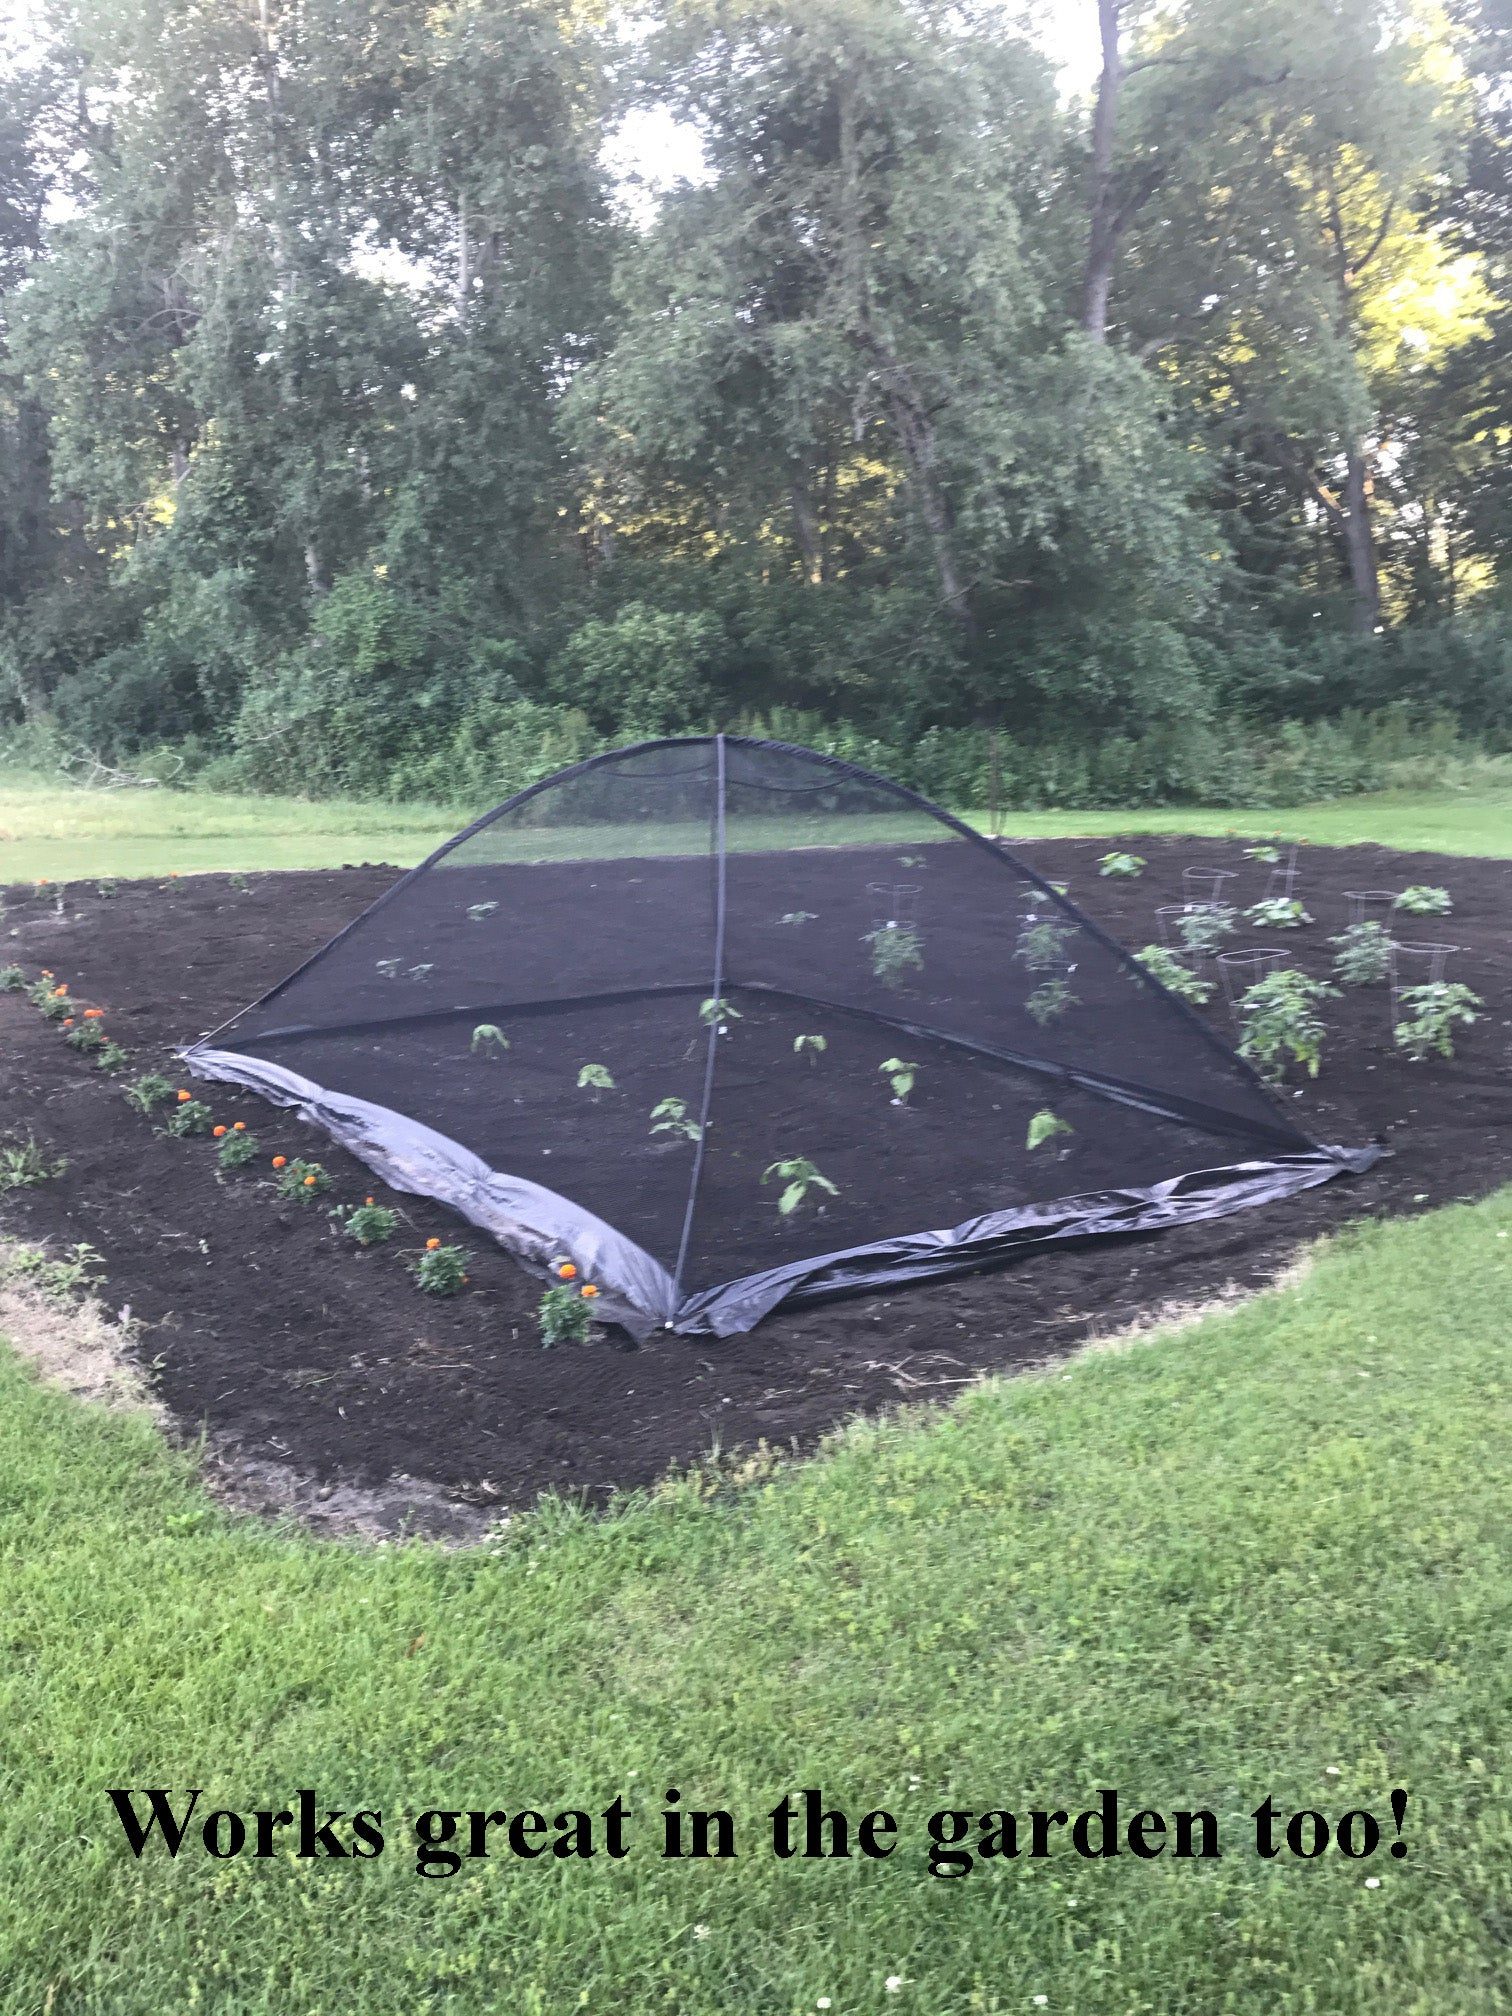 ... EasyPro Pond Garden Cover Protective Net Tent Dome Netting ... & EasyPro Pond Net Tents - Protect Gardens too! u2013 Great Lakes Bio Systems